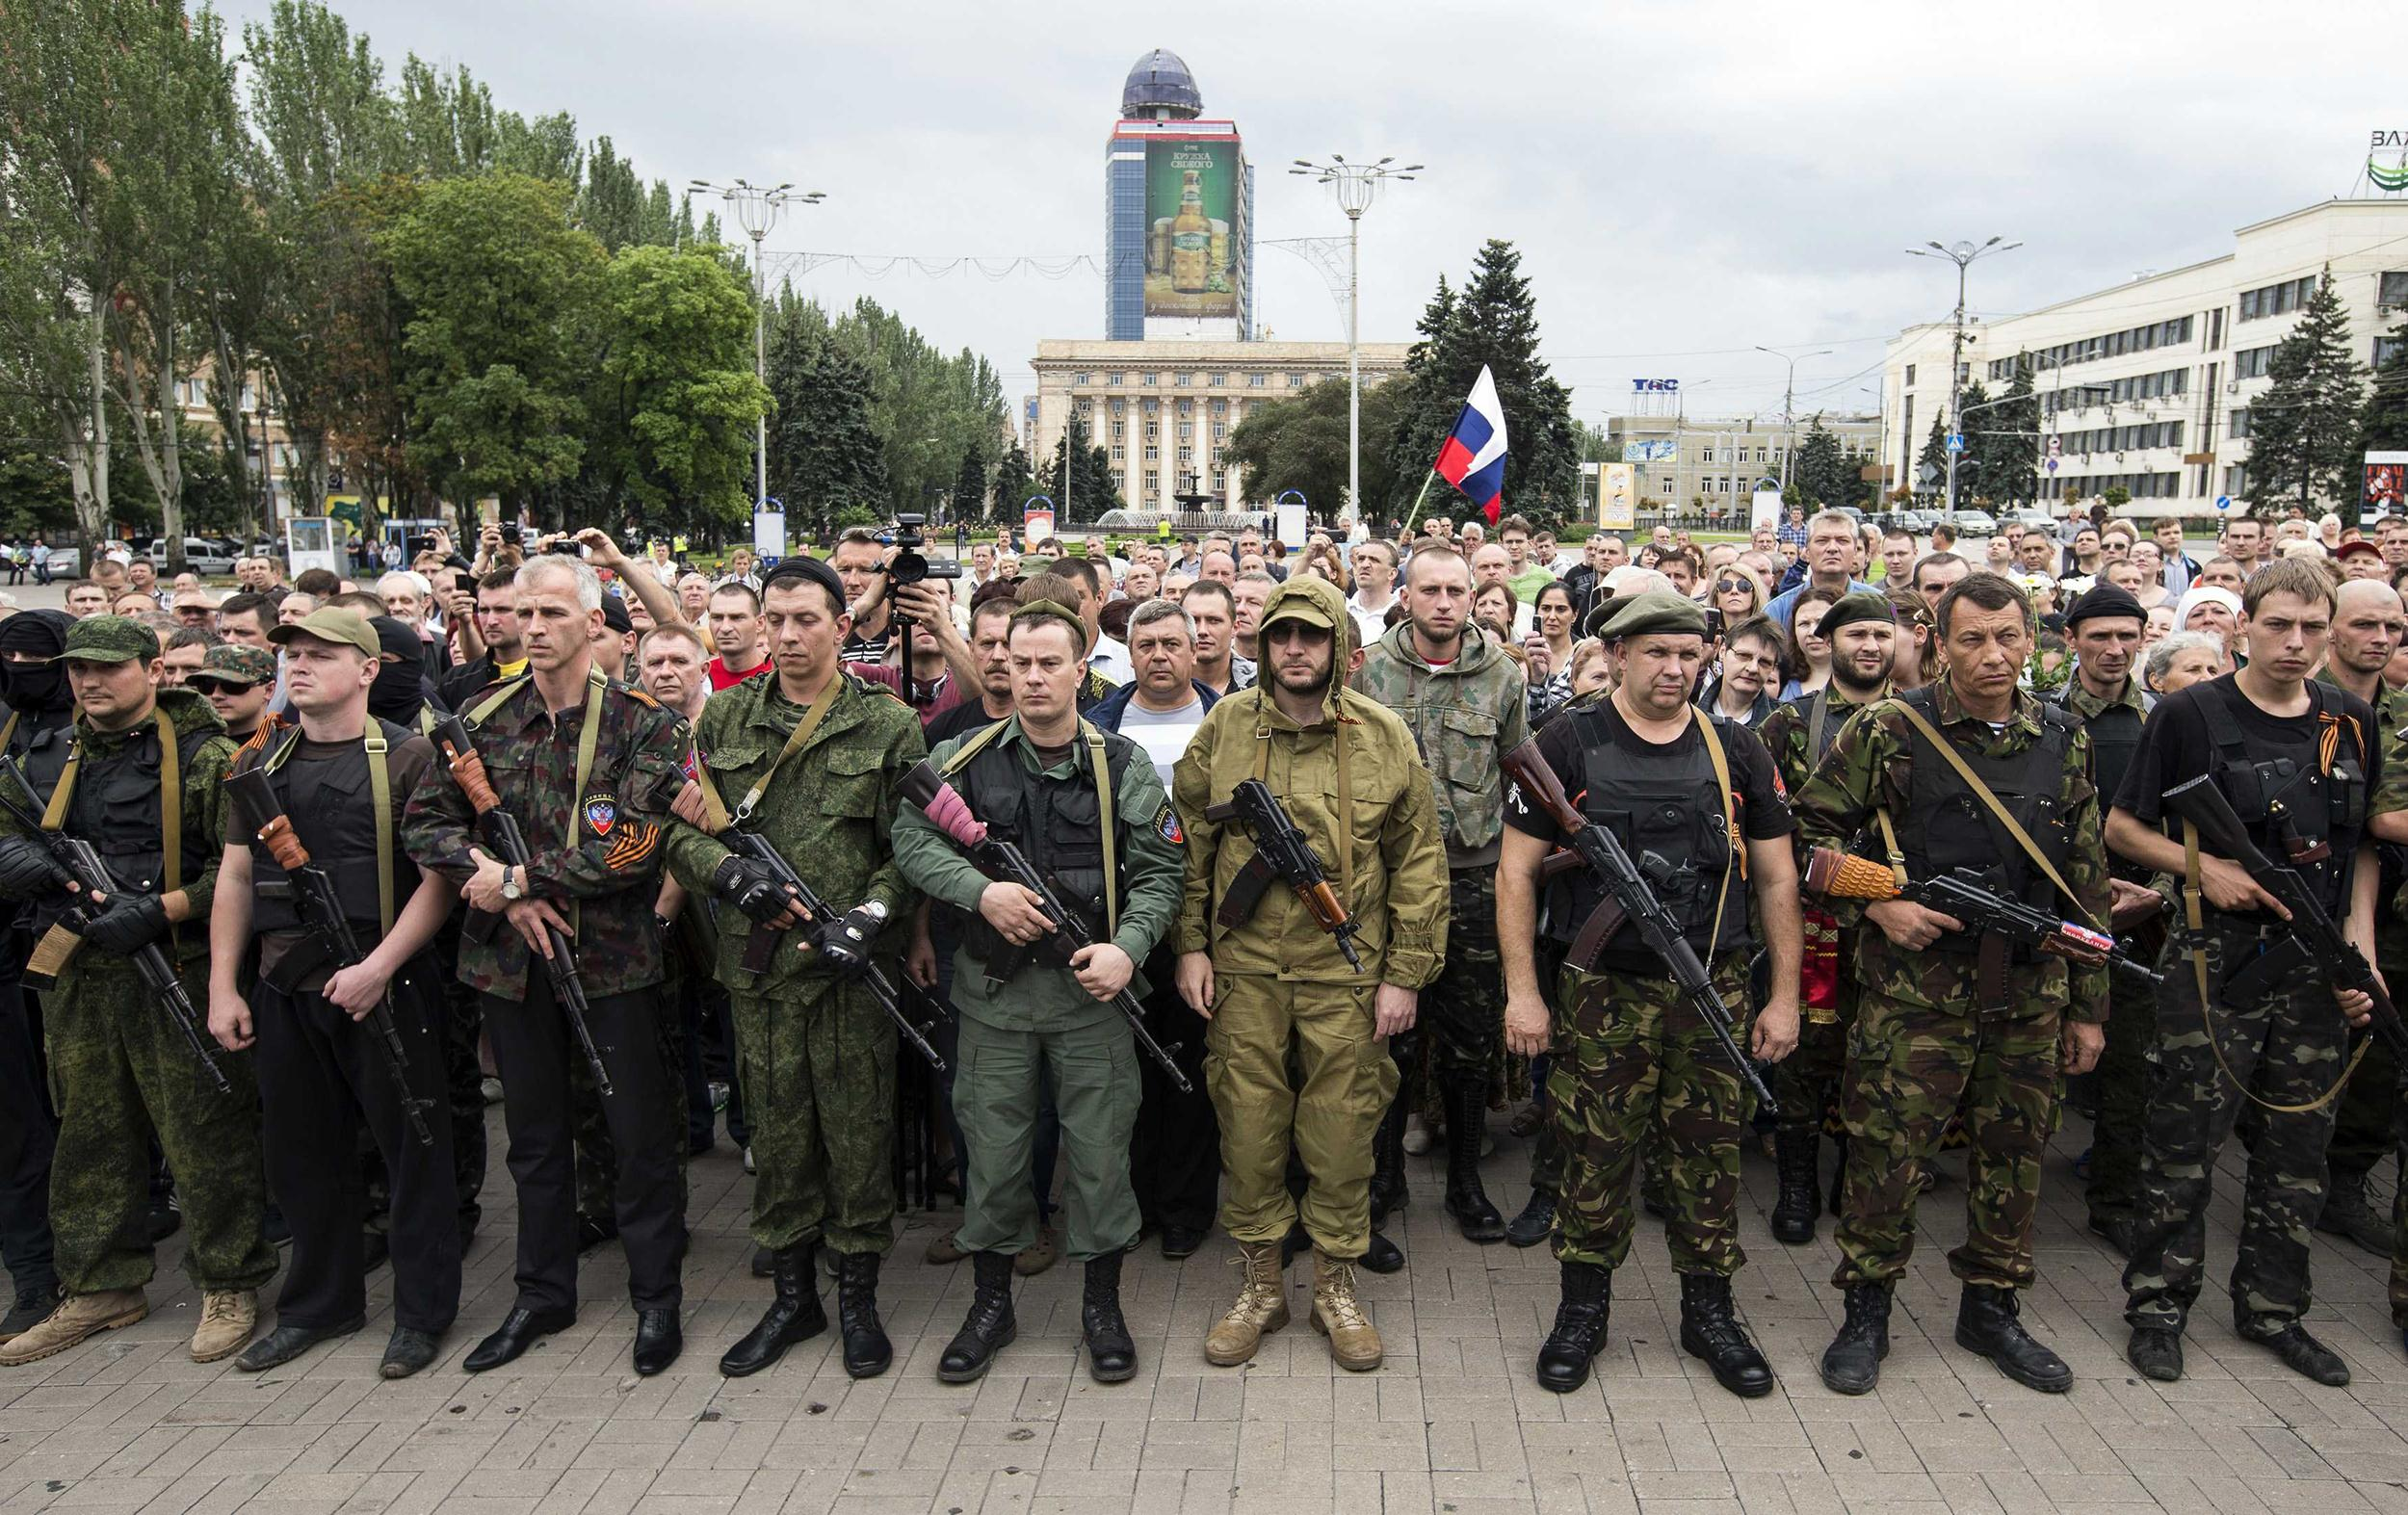 Image: Armed pro-Russian separatists of the self-proclaimed Donetsk People's Republic pledge an oath during a ceremony in the city of Donetsk